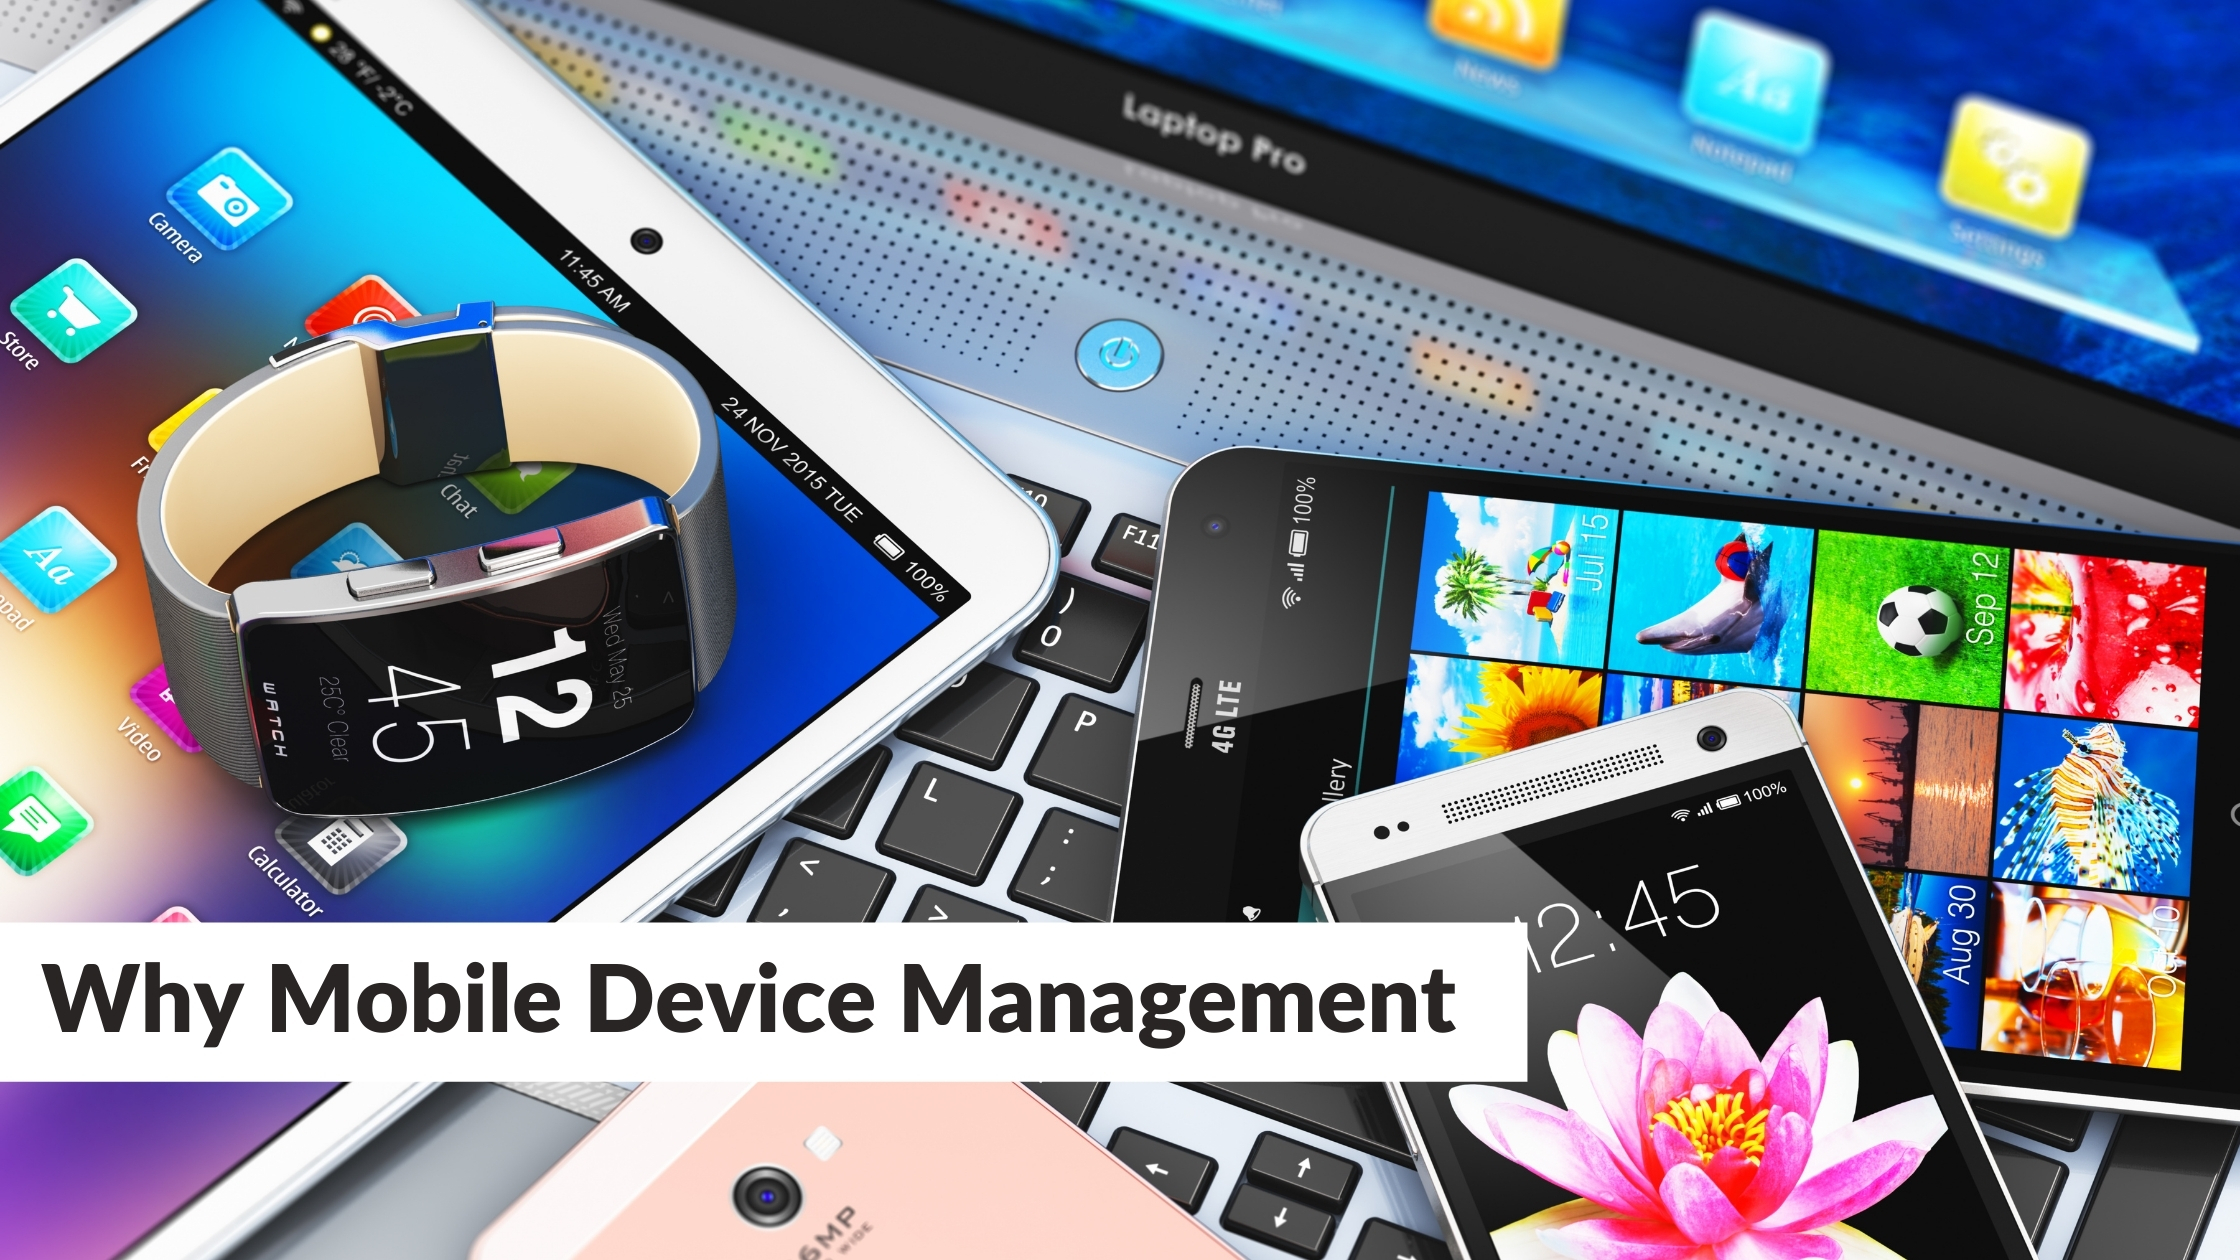 Why Mobile Device Management